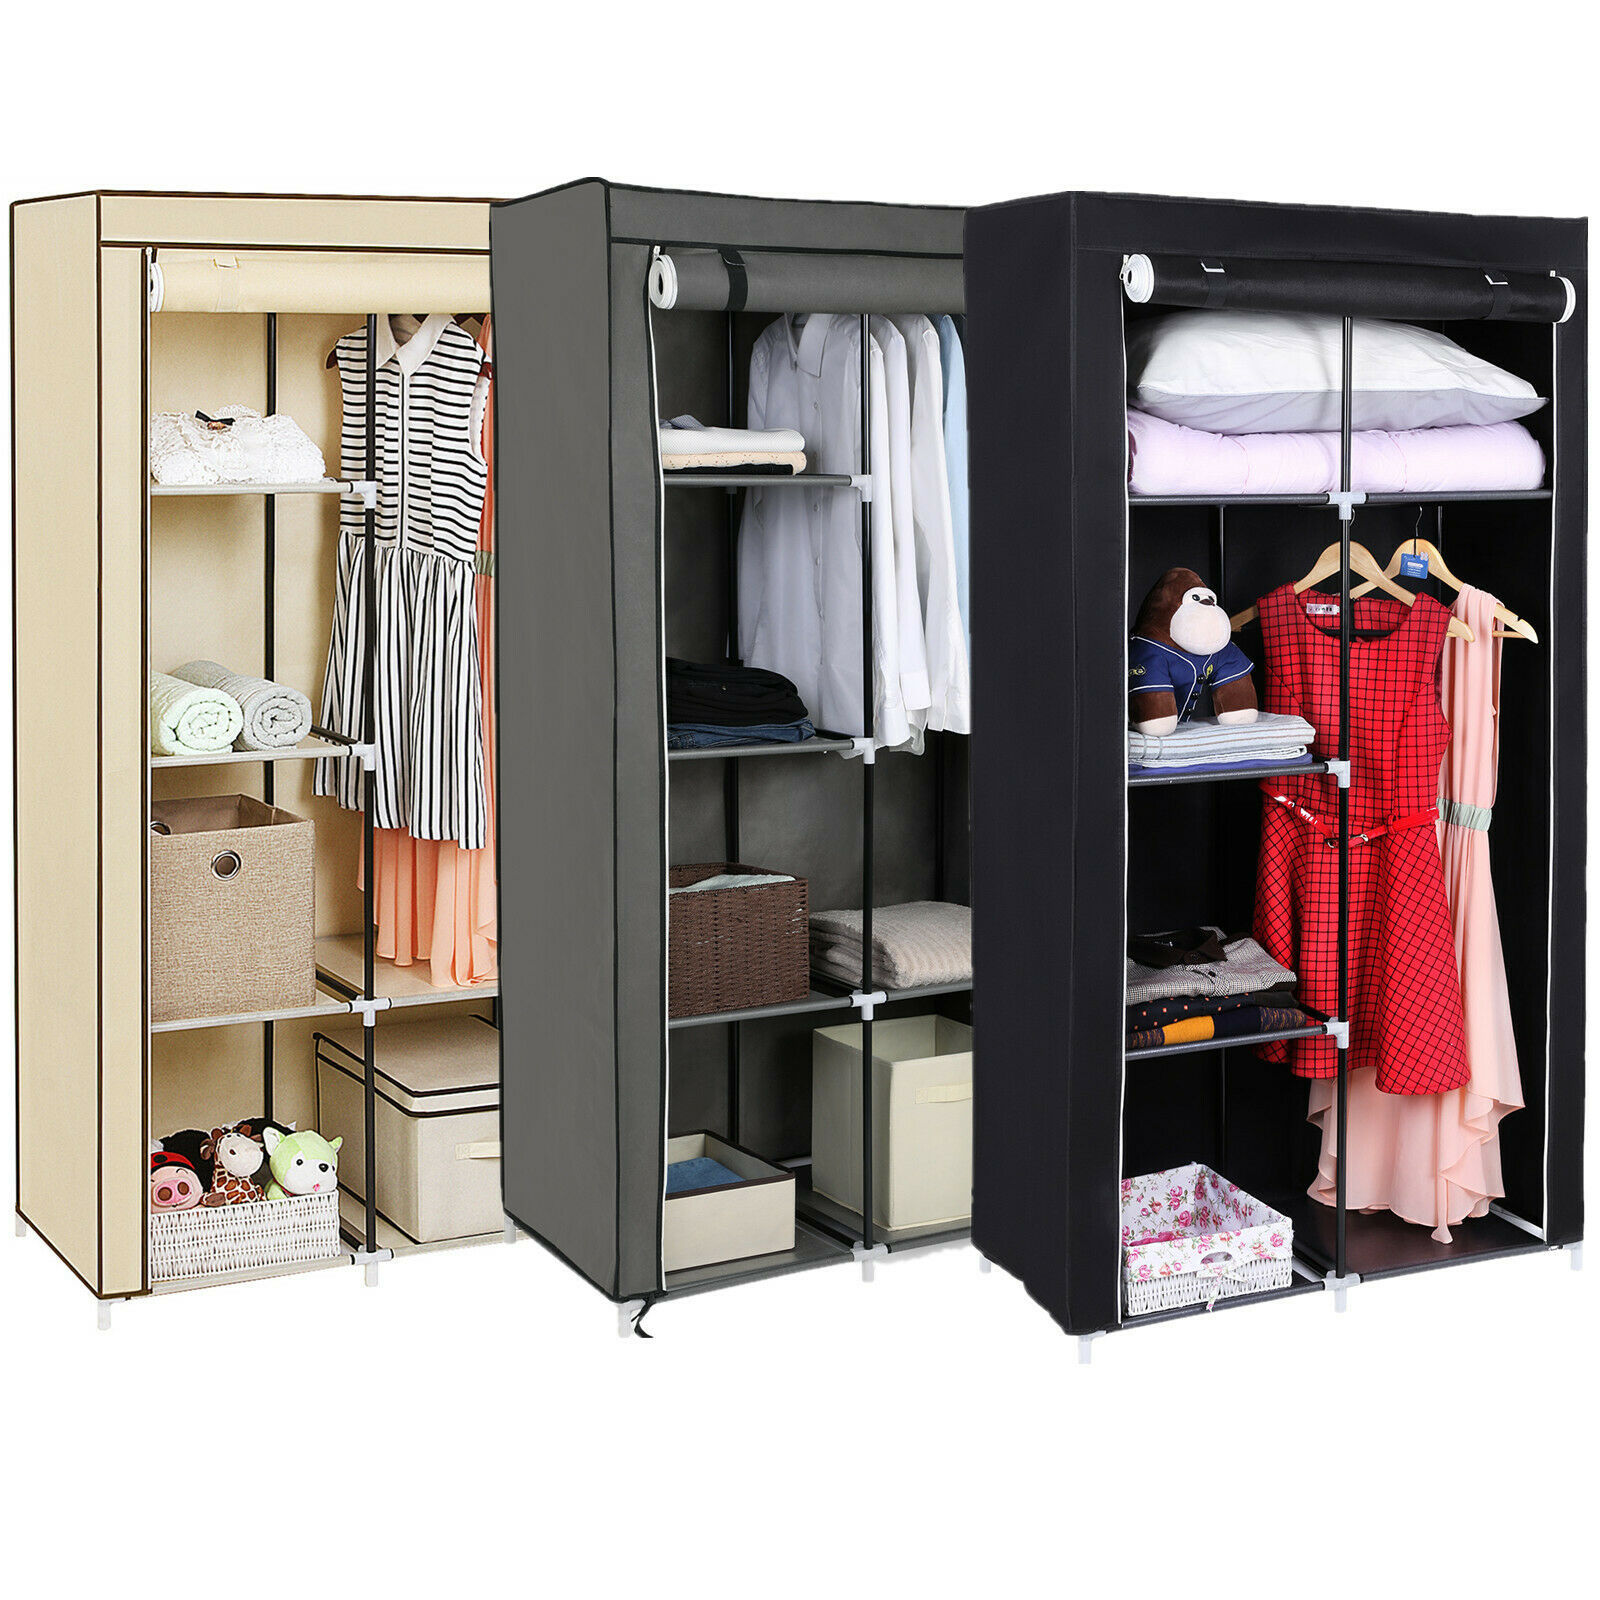 faltschrank kleiderschrank stoffschrank garderobe aufbewahrung regal 88x170x45cm chf. Black Bedroom Furniture Sets. Home Design Ideas